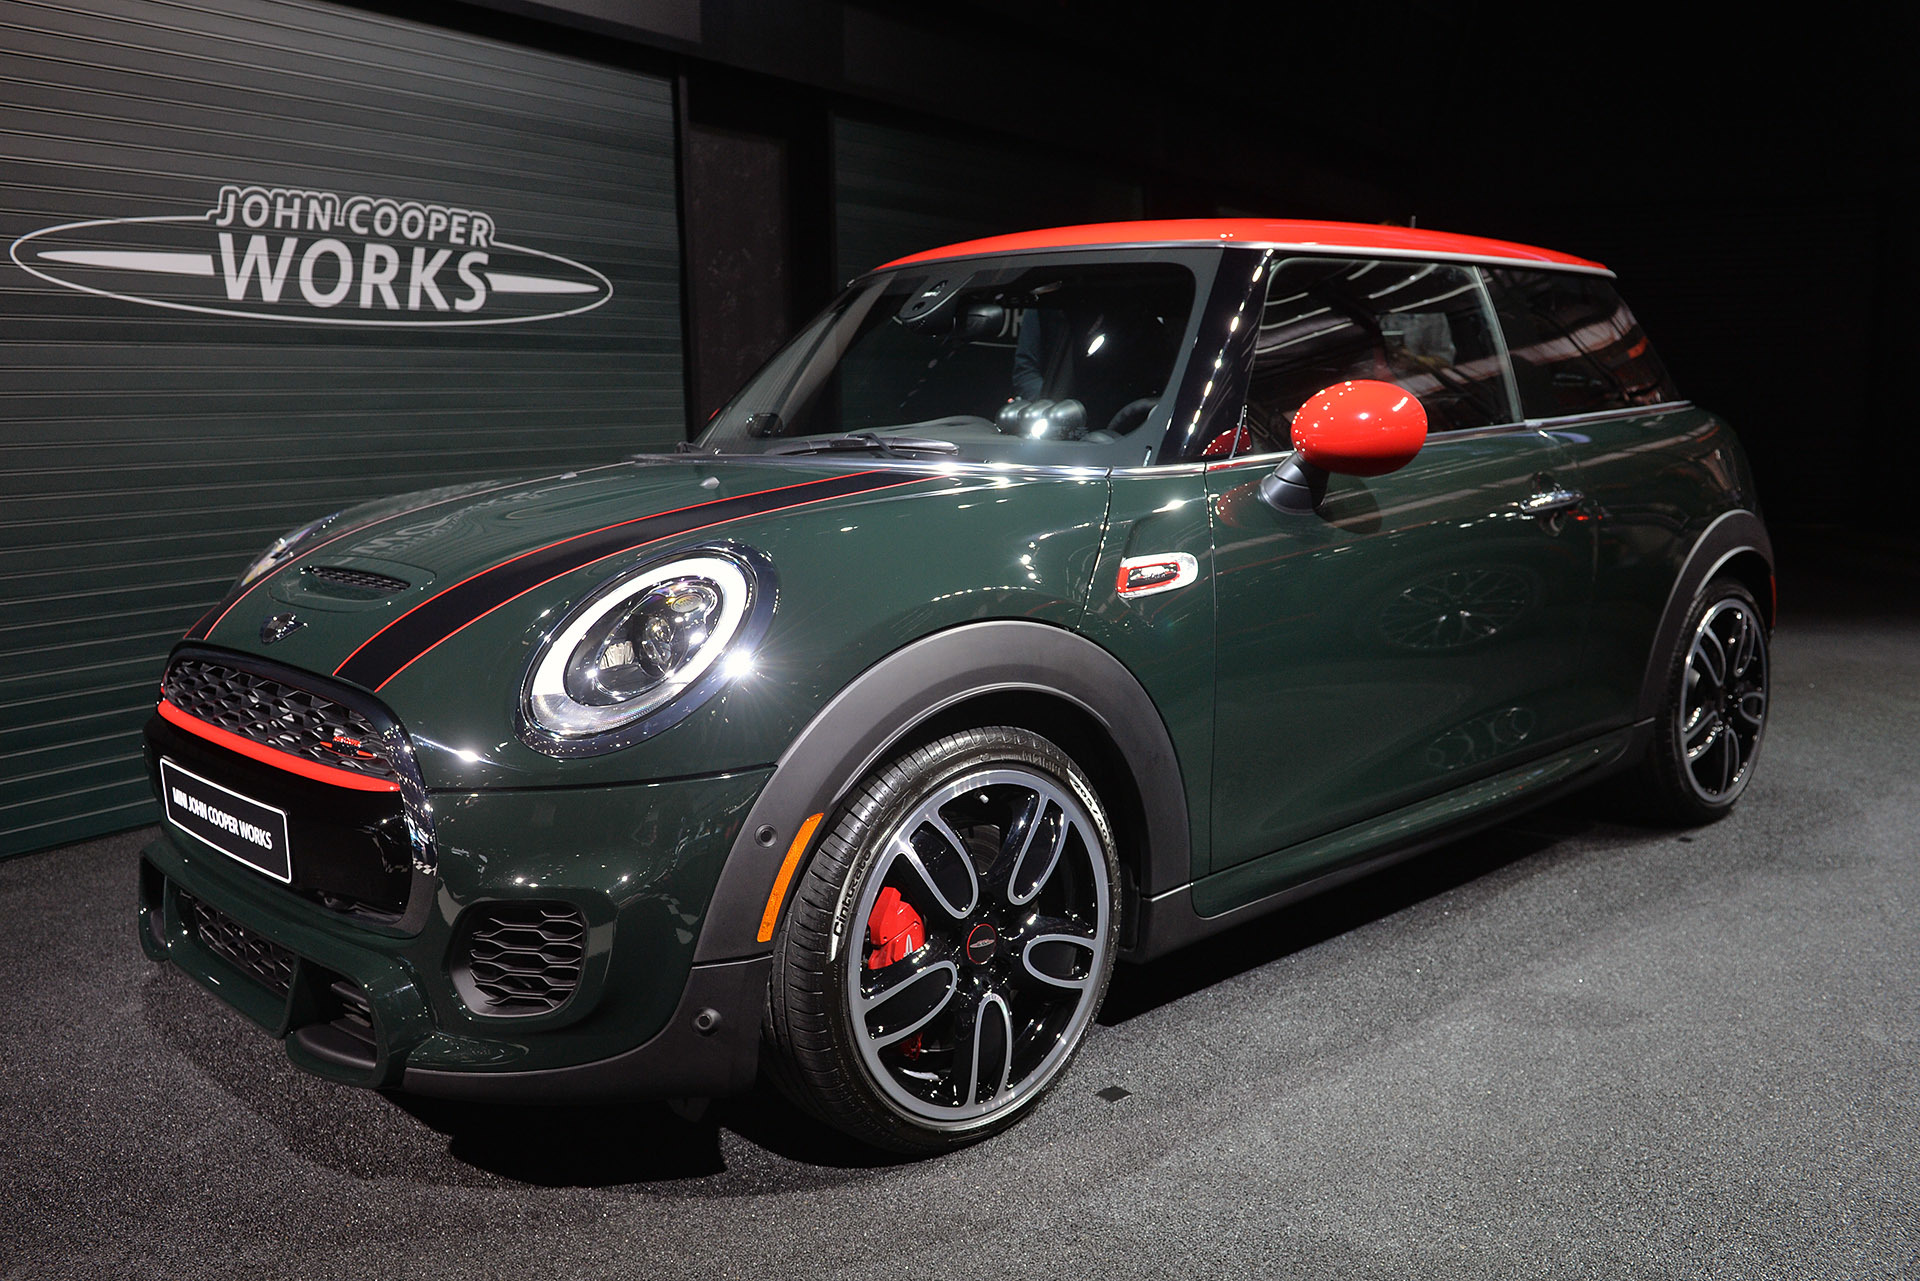 2015 mini john cooper works hardtop detroit 2015 photo gallery autoblog. Black Bedroom Furniture Sets. Home Design Ideas